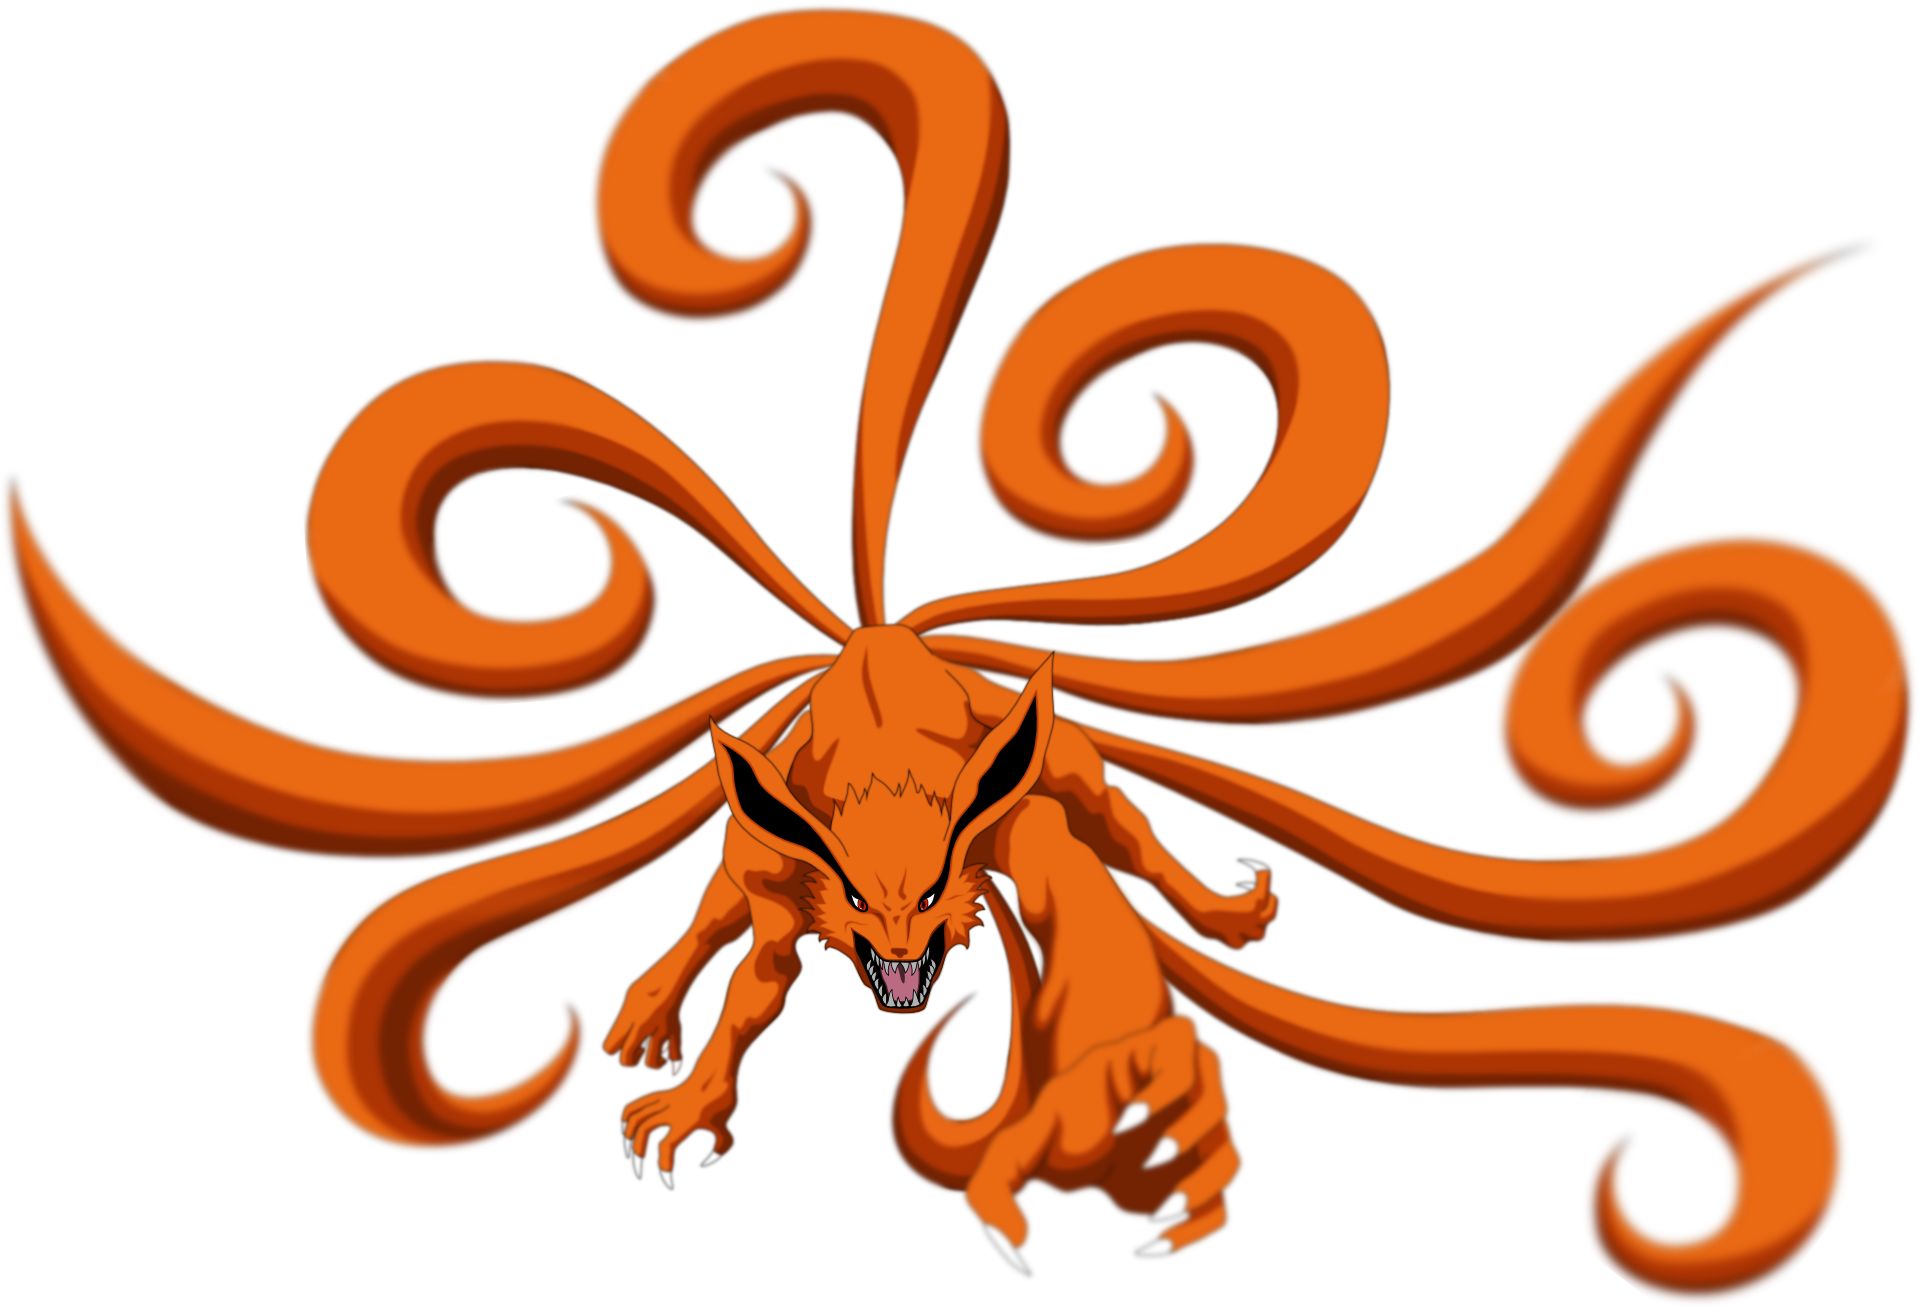 Nine Tails Drawing | Free download best Nine Tails Drawing